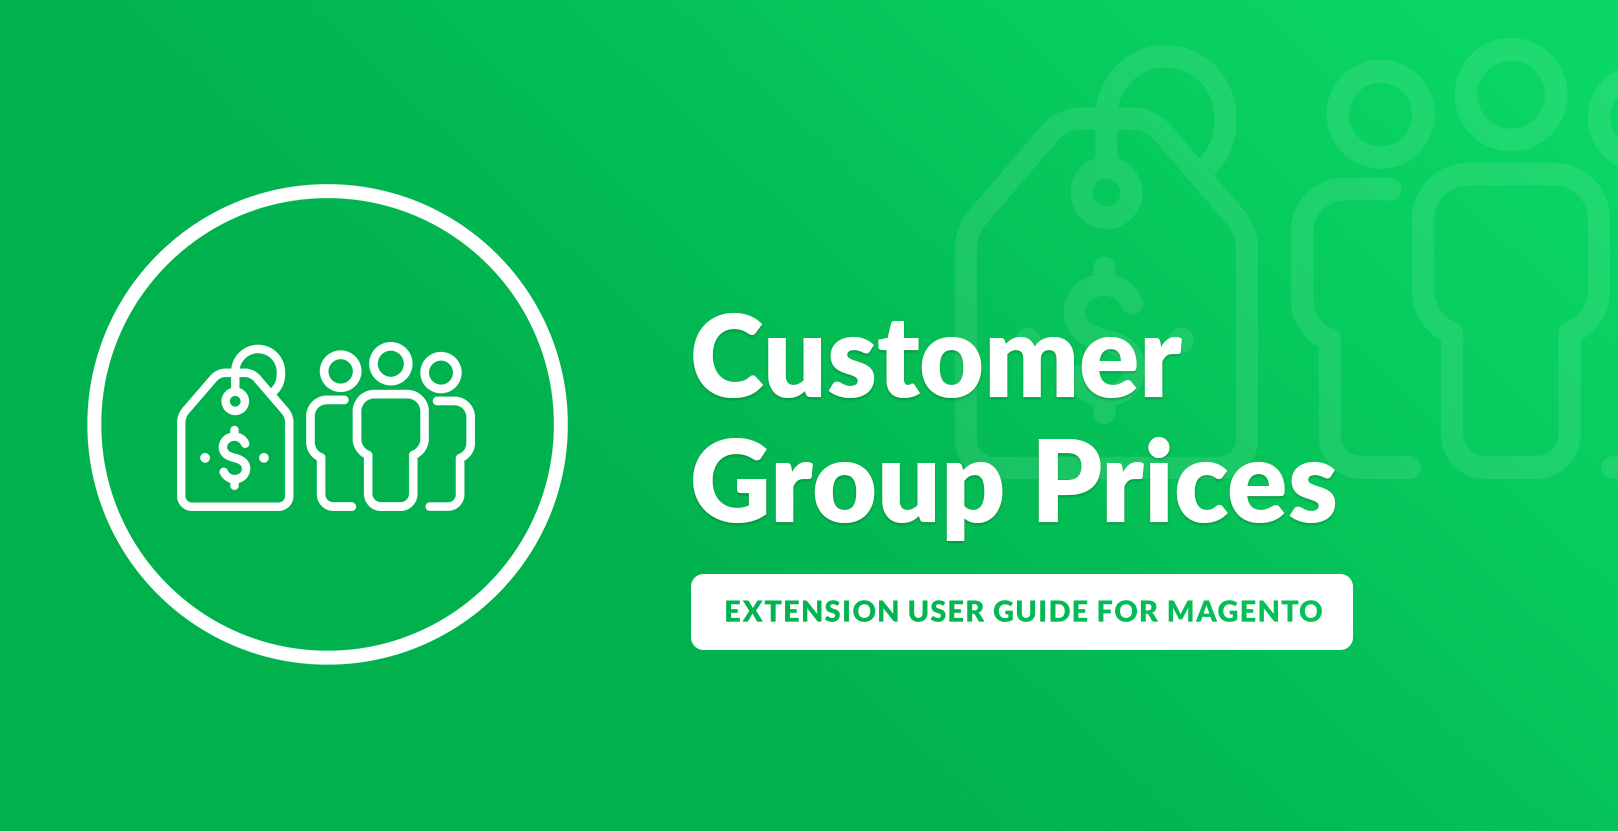 Customer Group Prices